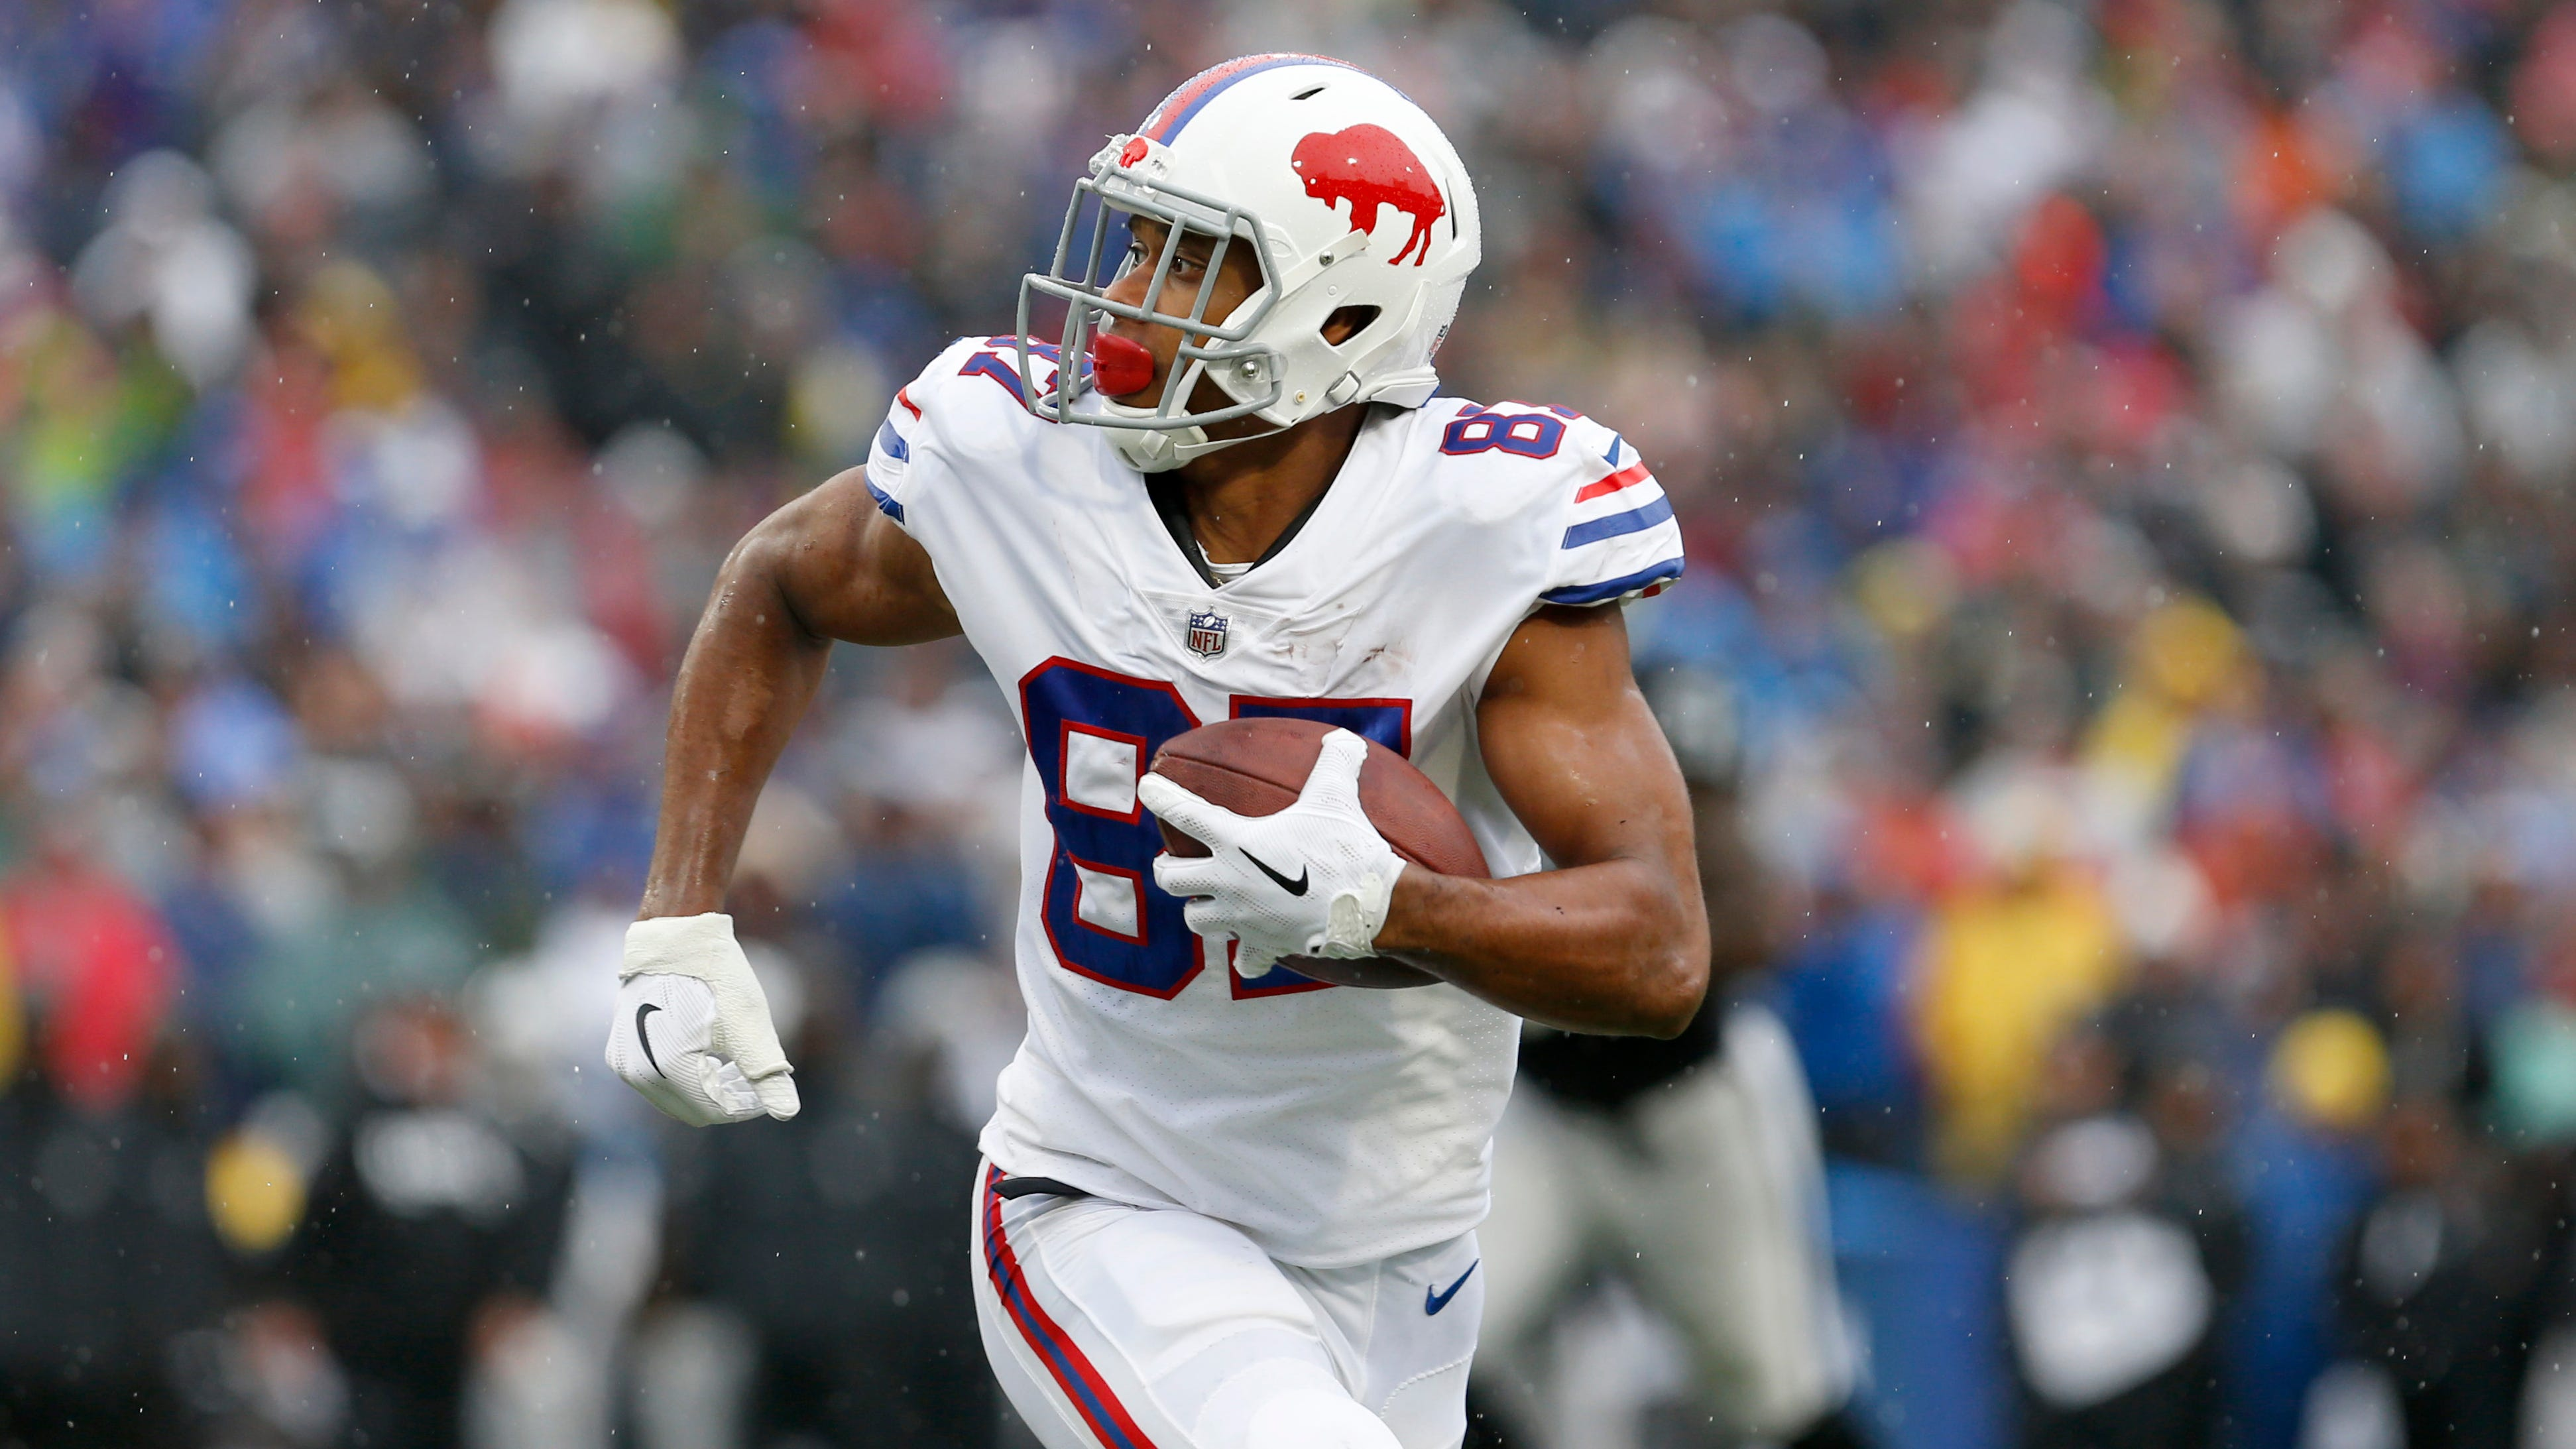 Jordan Matthews' tenure with the Buffalo Bills was brief, but he did undergo one major life change during his time away from the Philadelphia Eagles.